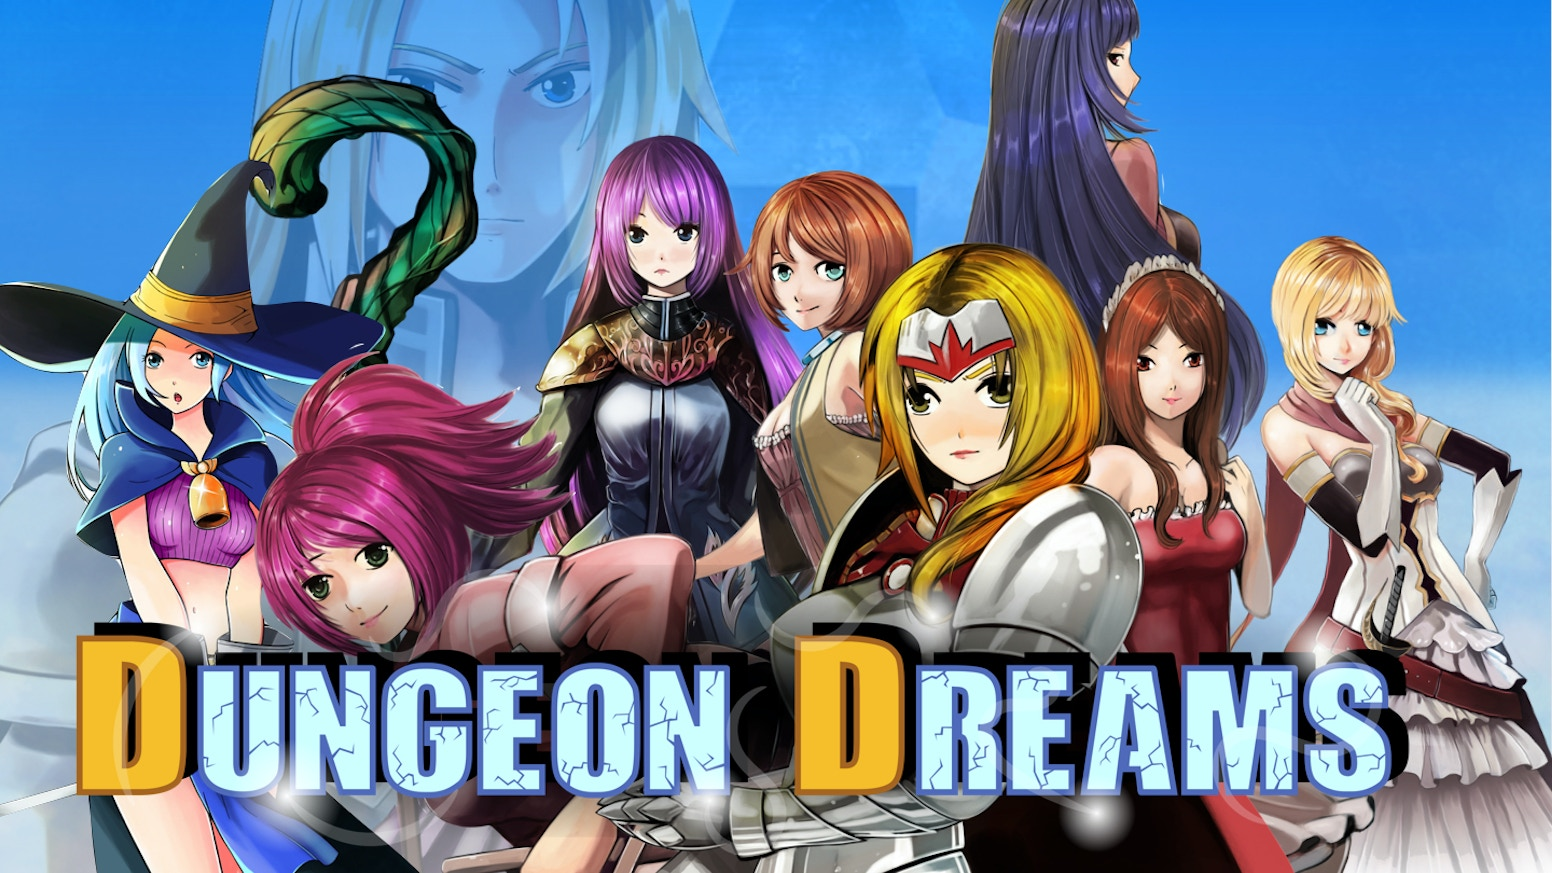 Dungeon dreams roguelike style romance jrpg by dungeon dreams rpg roguelike inspired dungeon crawler with life sim relationships and town building a rpg publicscrutiny Image collections